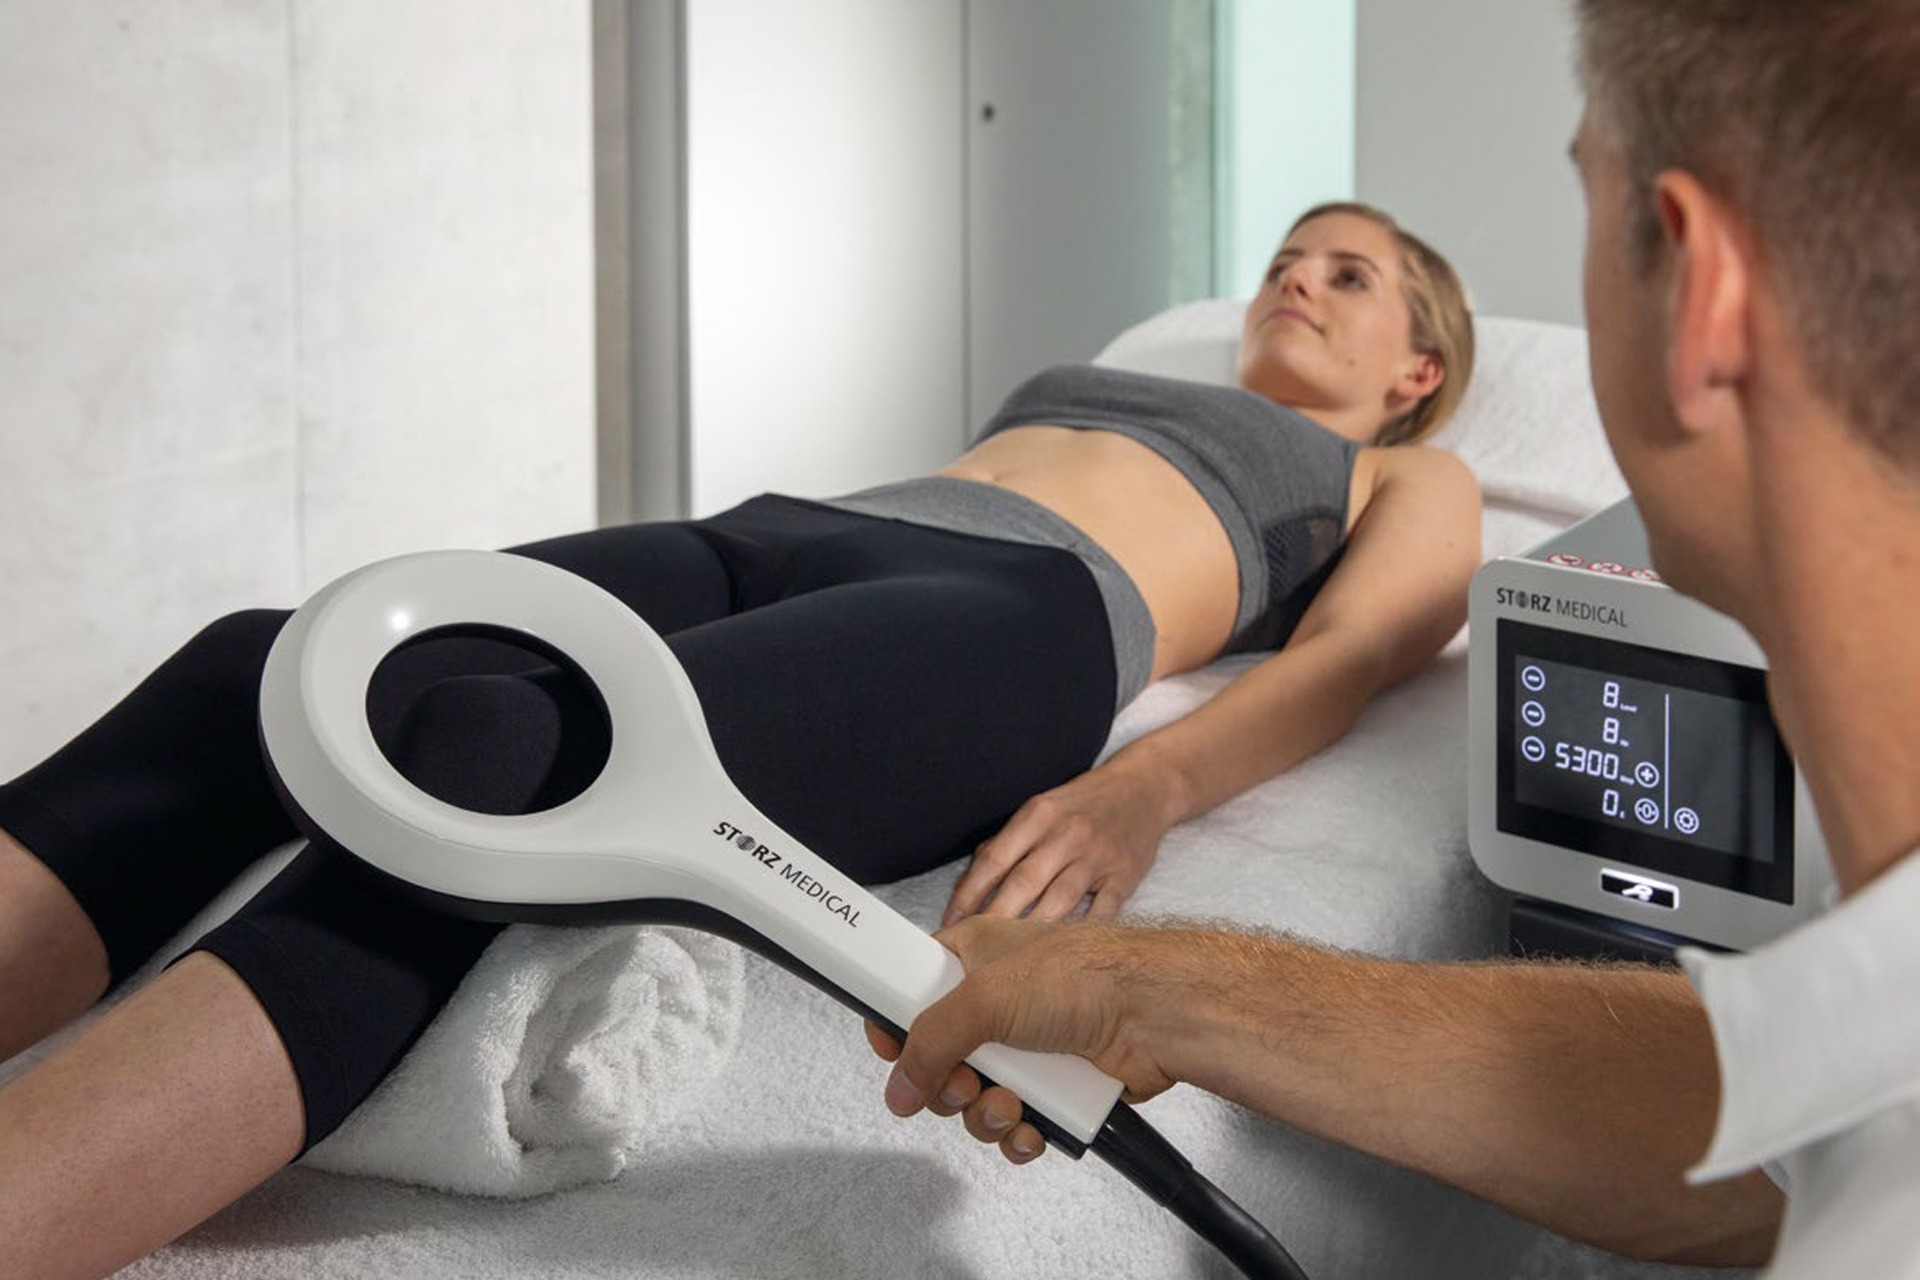 HelloPhysio Extracorporeal Magnetotransduction Therapy Physio Treatment